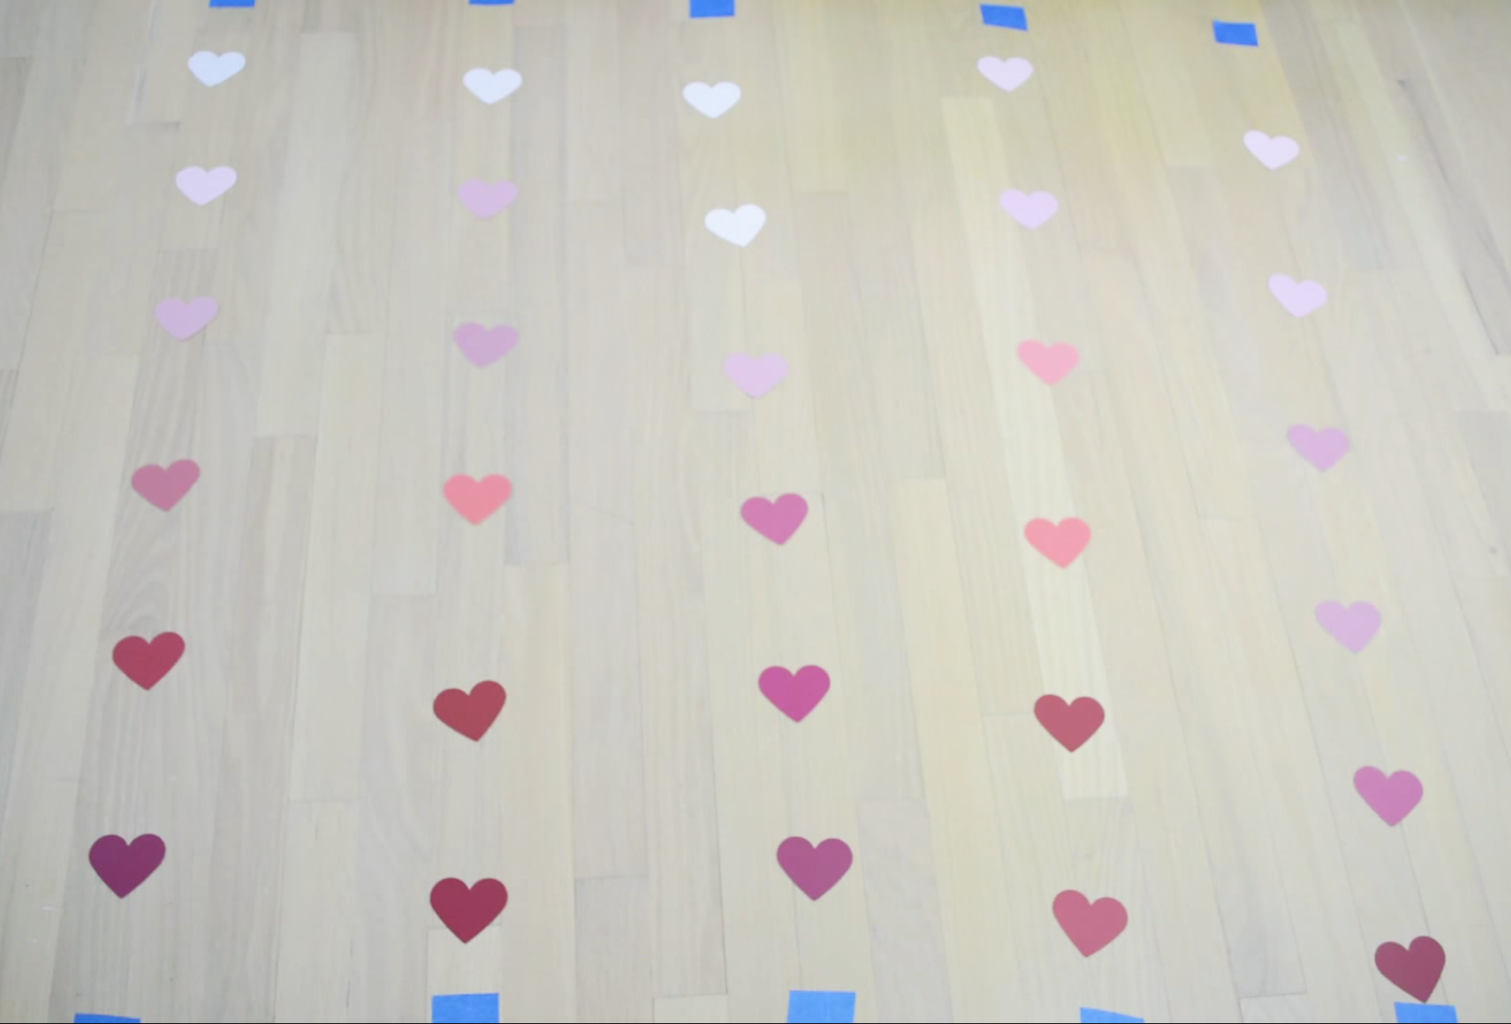 Lay Out the Hearts